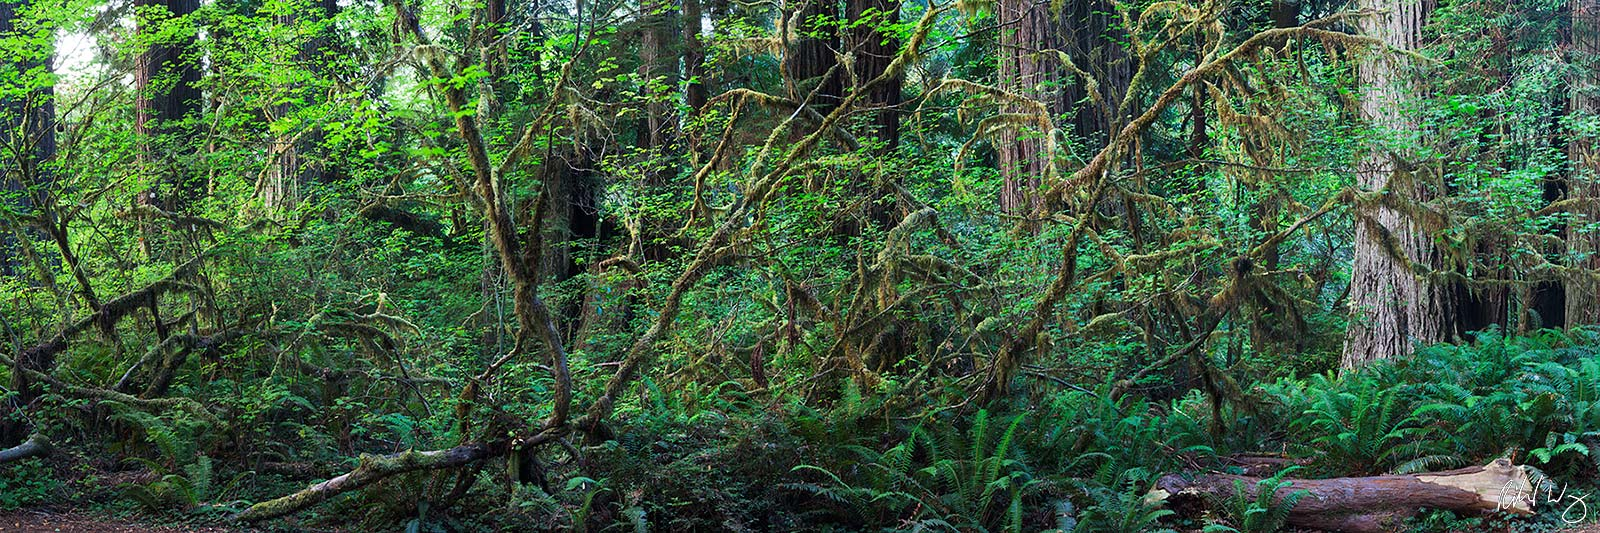 Panoramic Photo of Dense Temperate Rainforest, Prairie Creek Redwoods State Park, California Limited Edition of 10 Prints What...